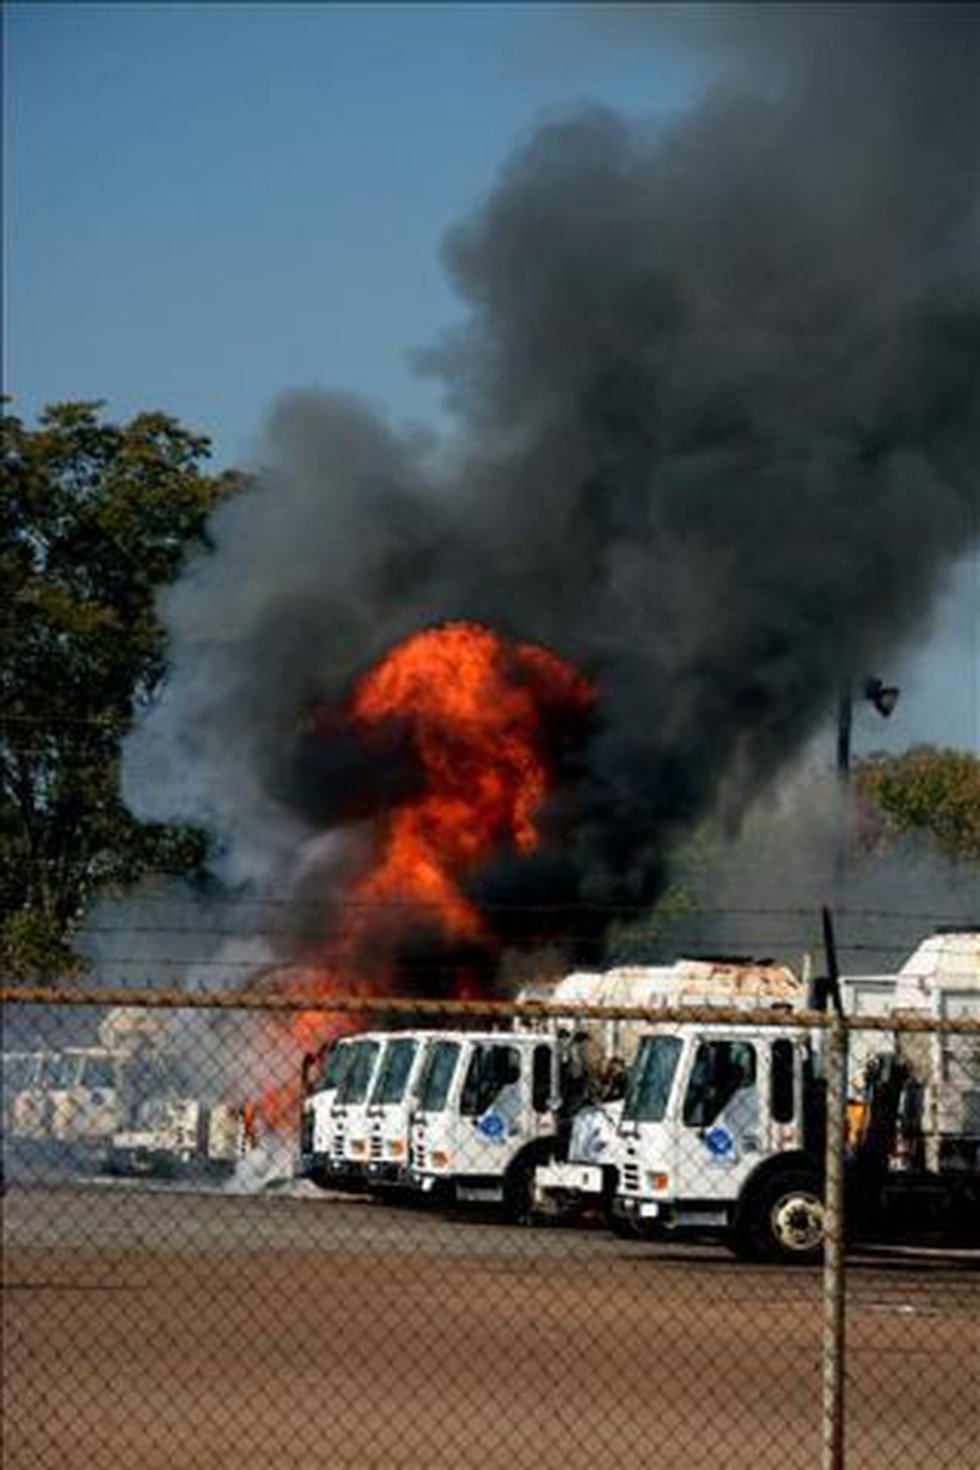 A Sunday afternoon fire started at one garbage truck, but soon spread. (Source: Jeff S.)